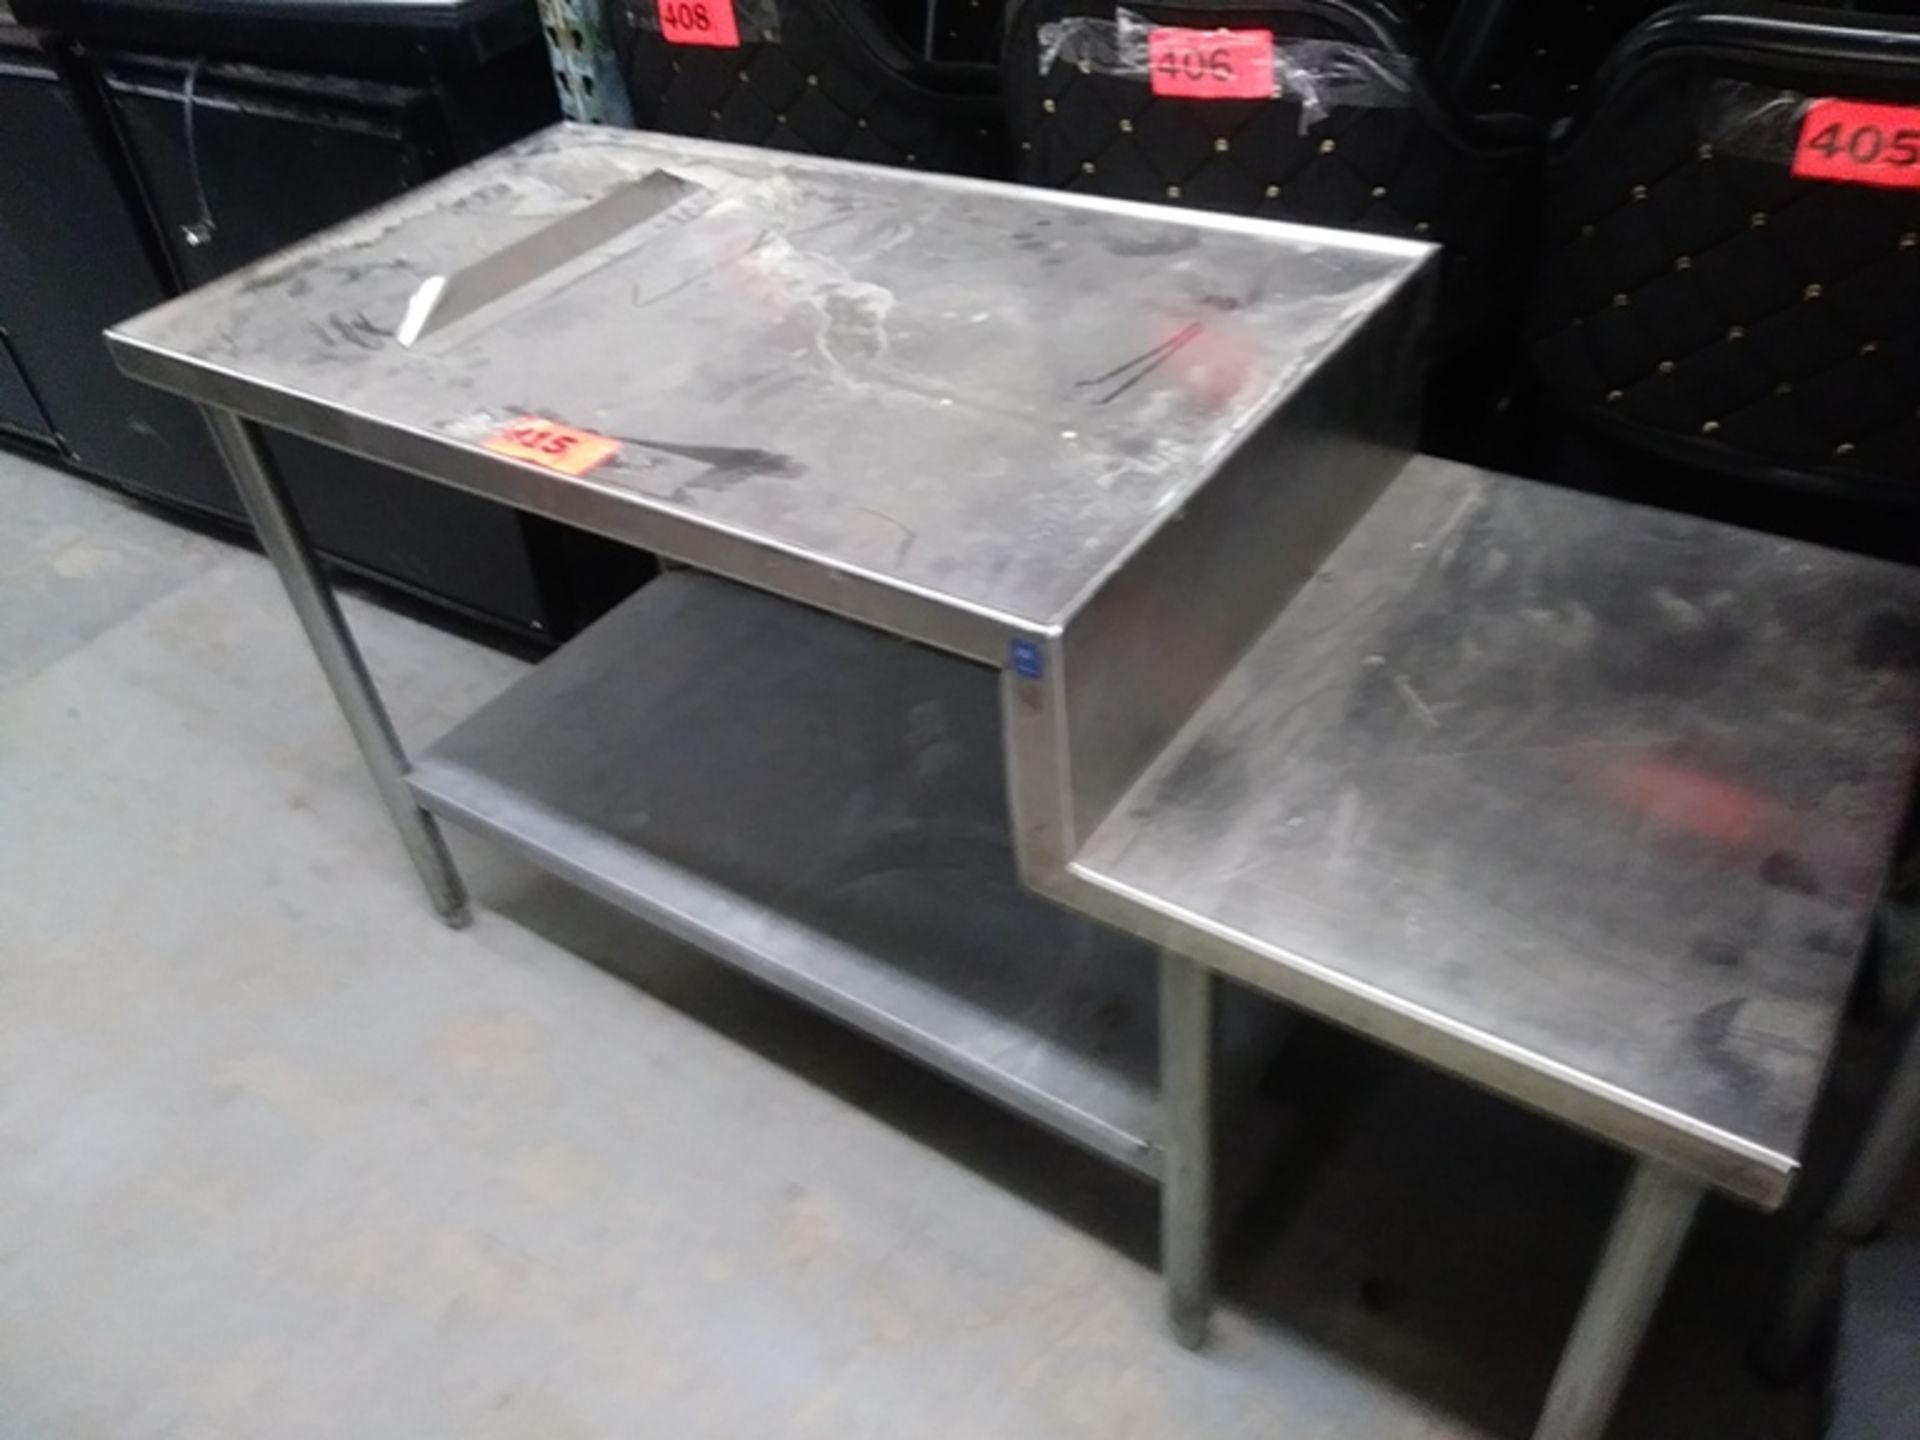 """Lot 415 - 4.5 FT STAINLESS STEEL PREP TABLE (56""""L X 23""""D X 31.5""""H)"""